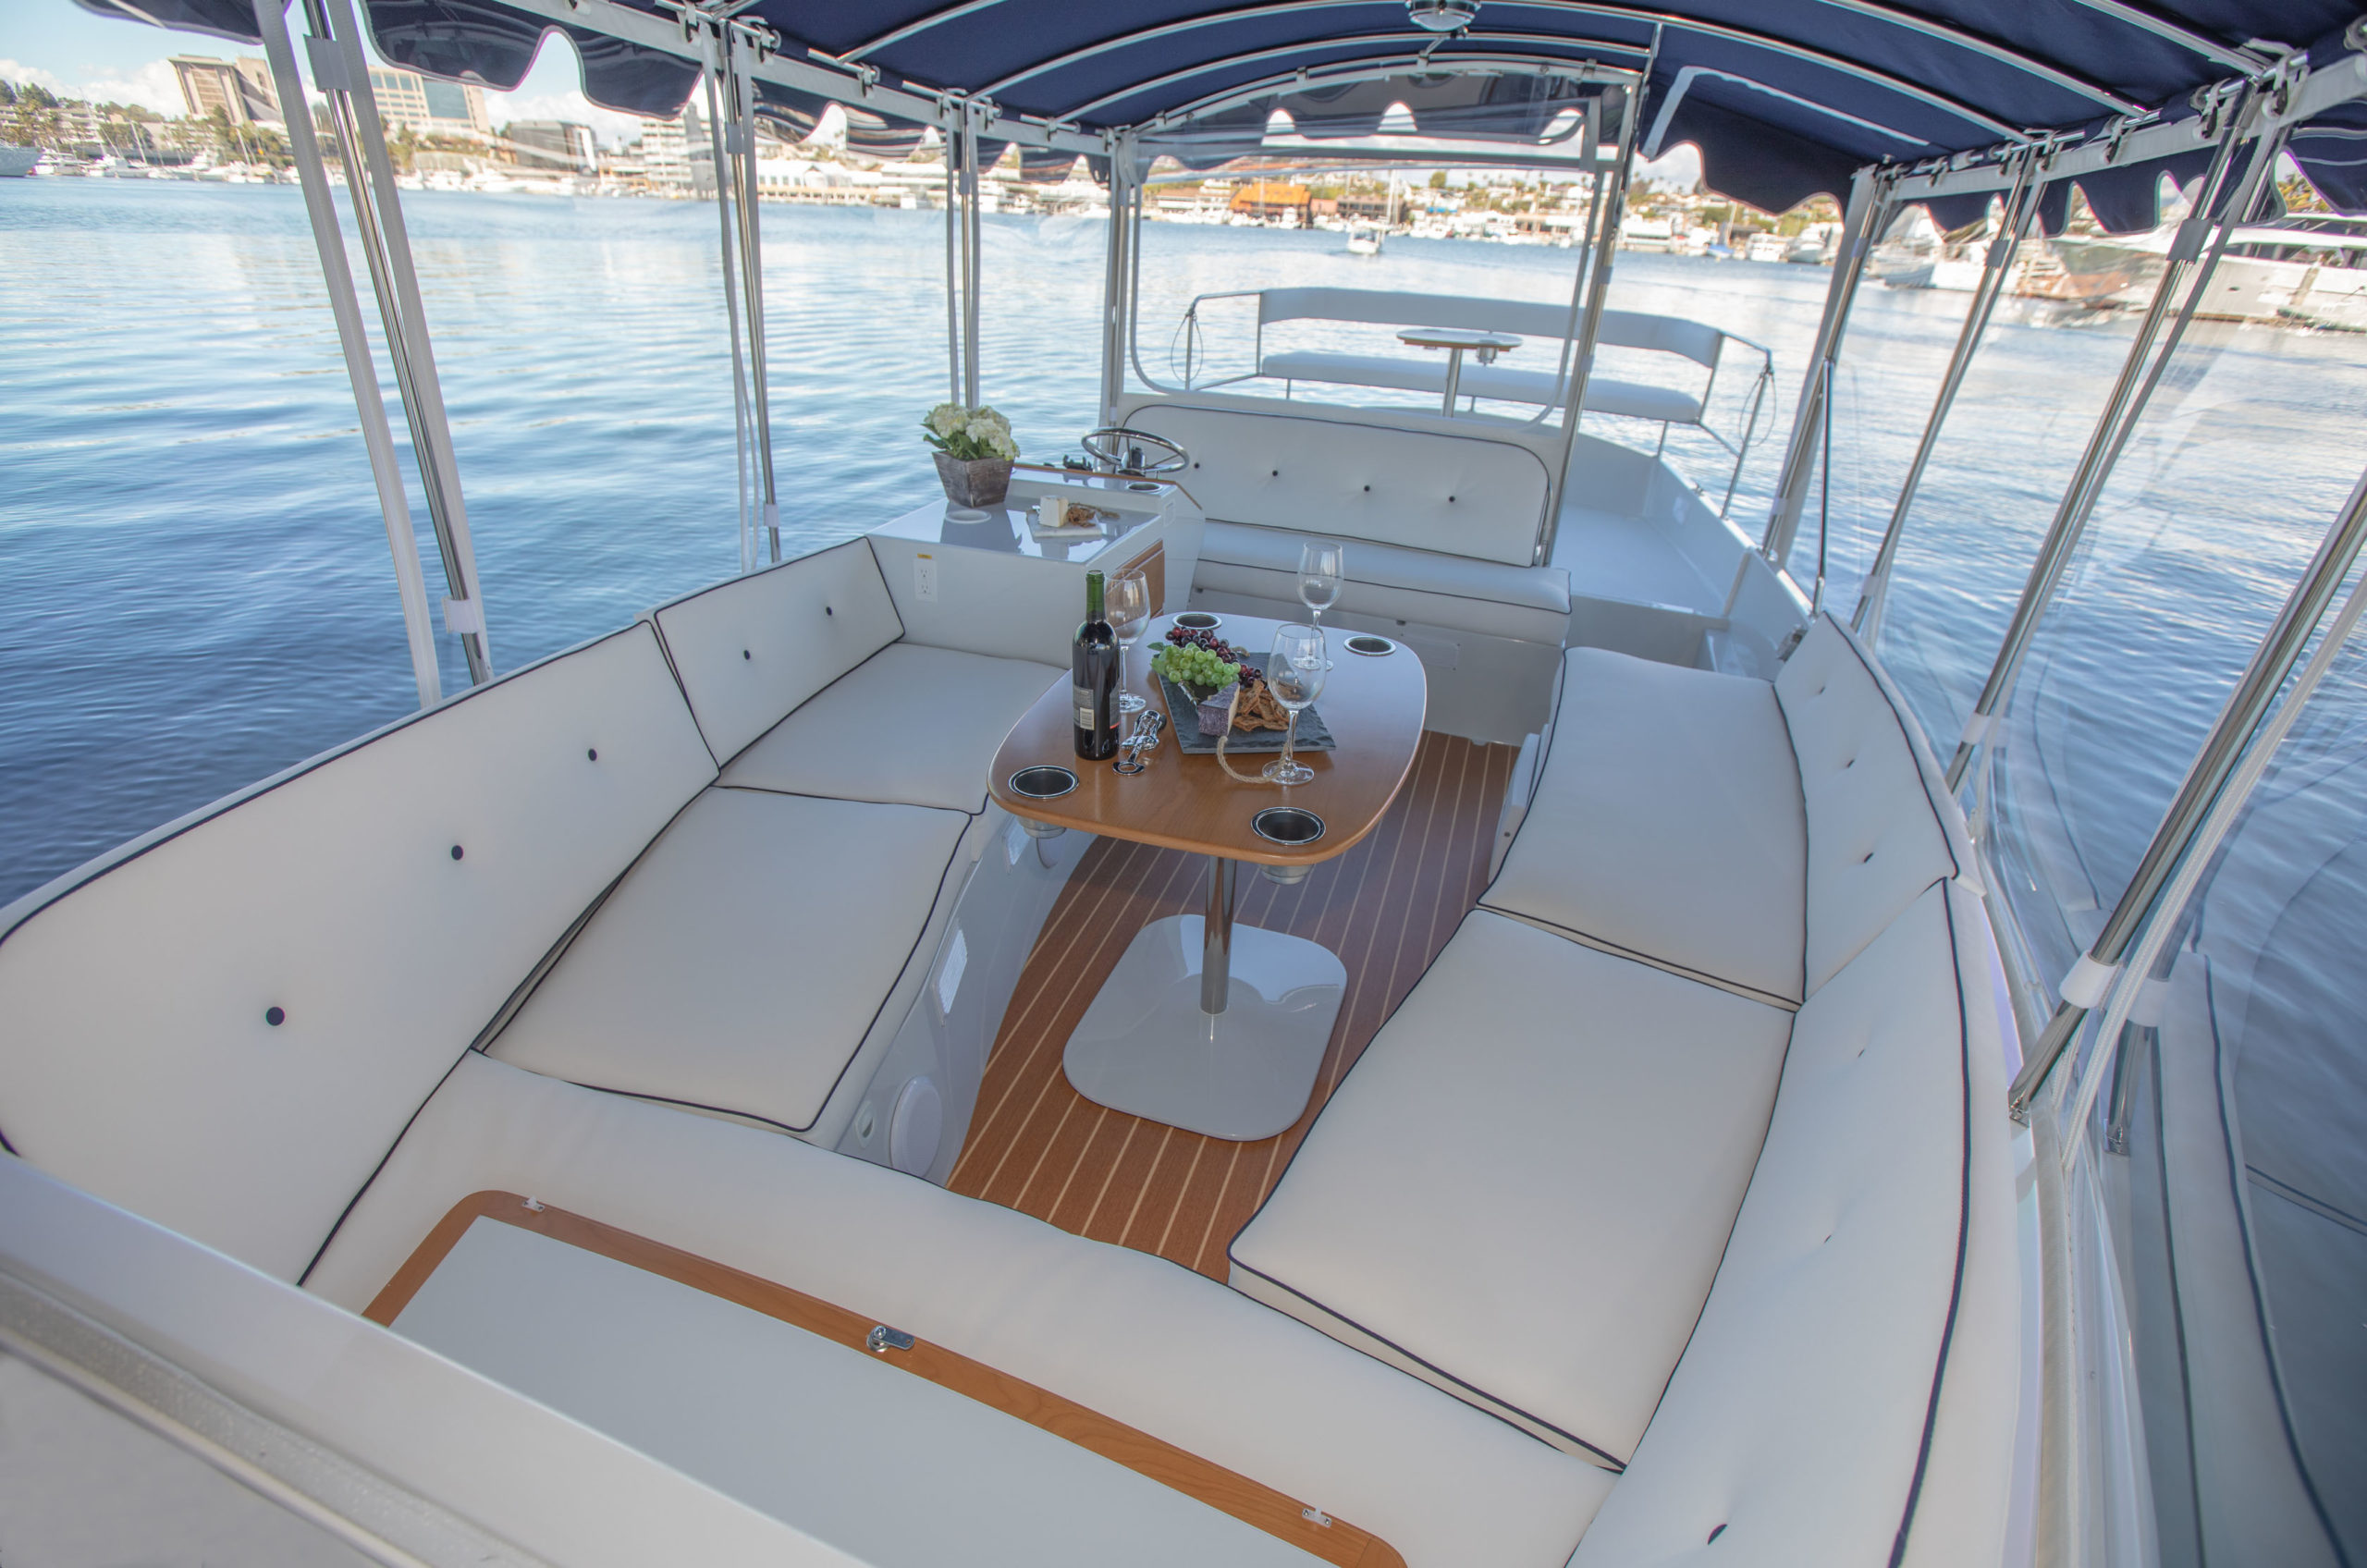 Photo of 2020 Duffy Electric Boat 22 Sun Cruiser looking aft from forward deck.